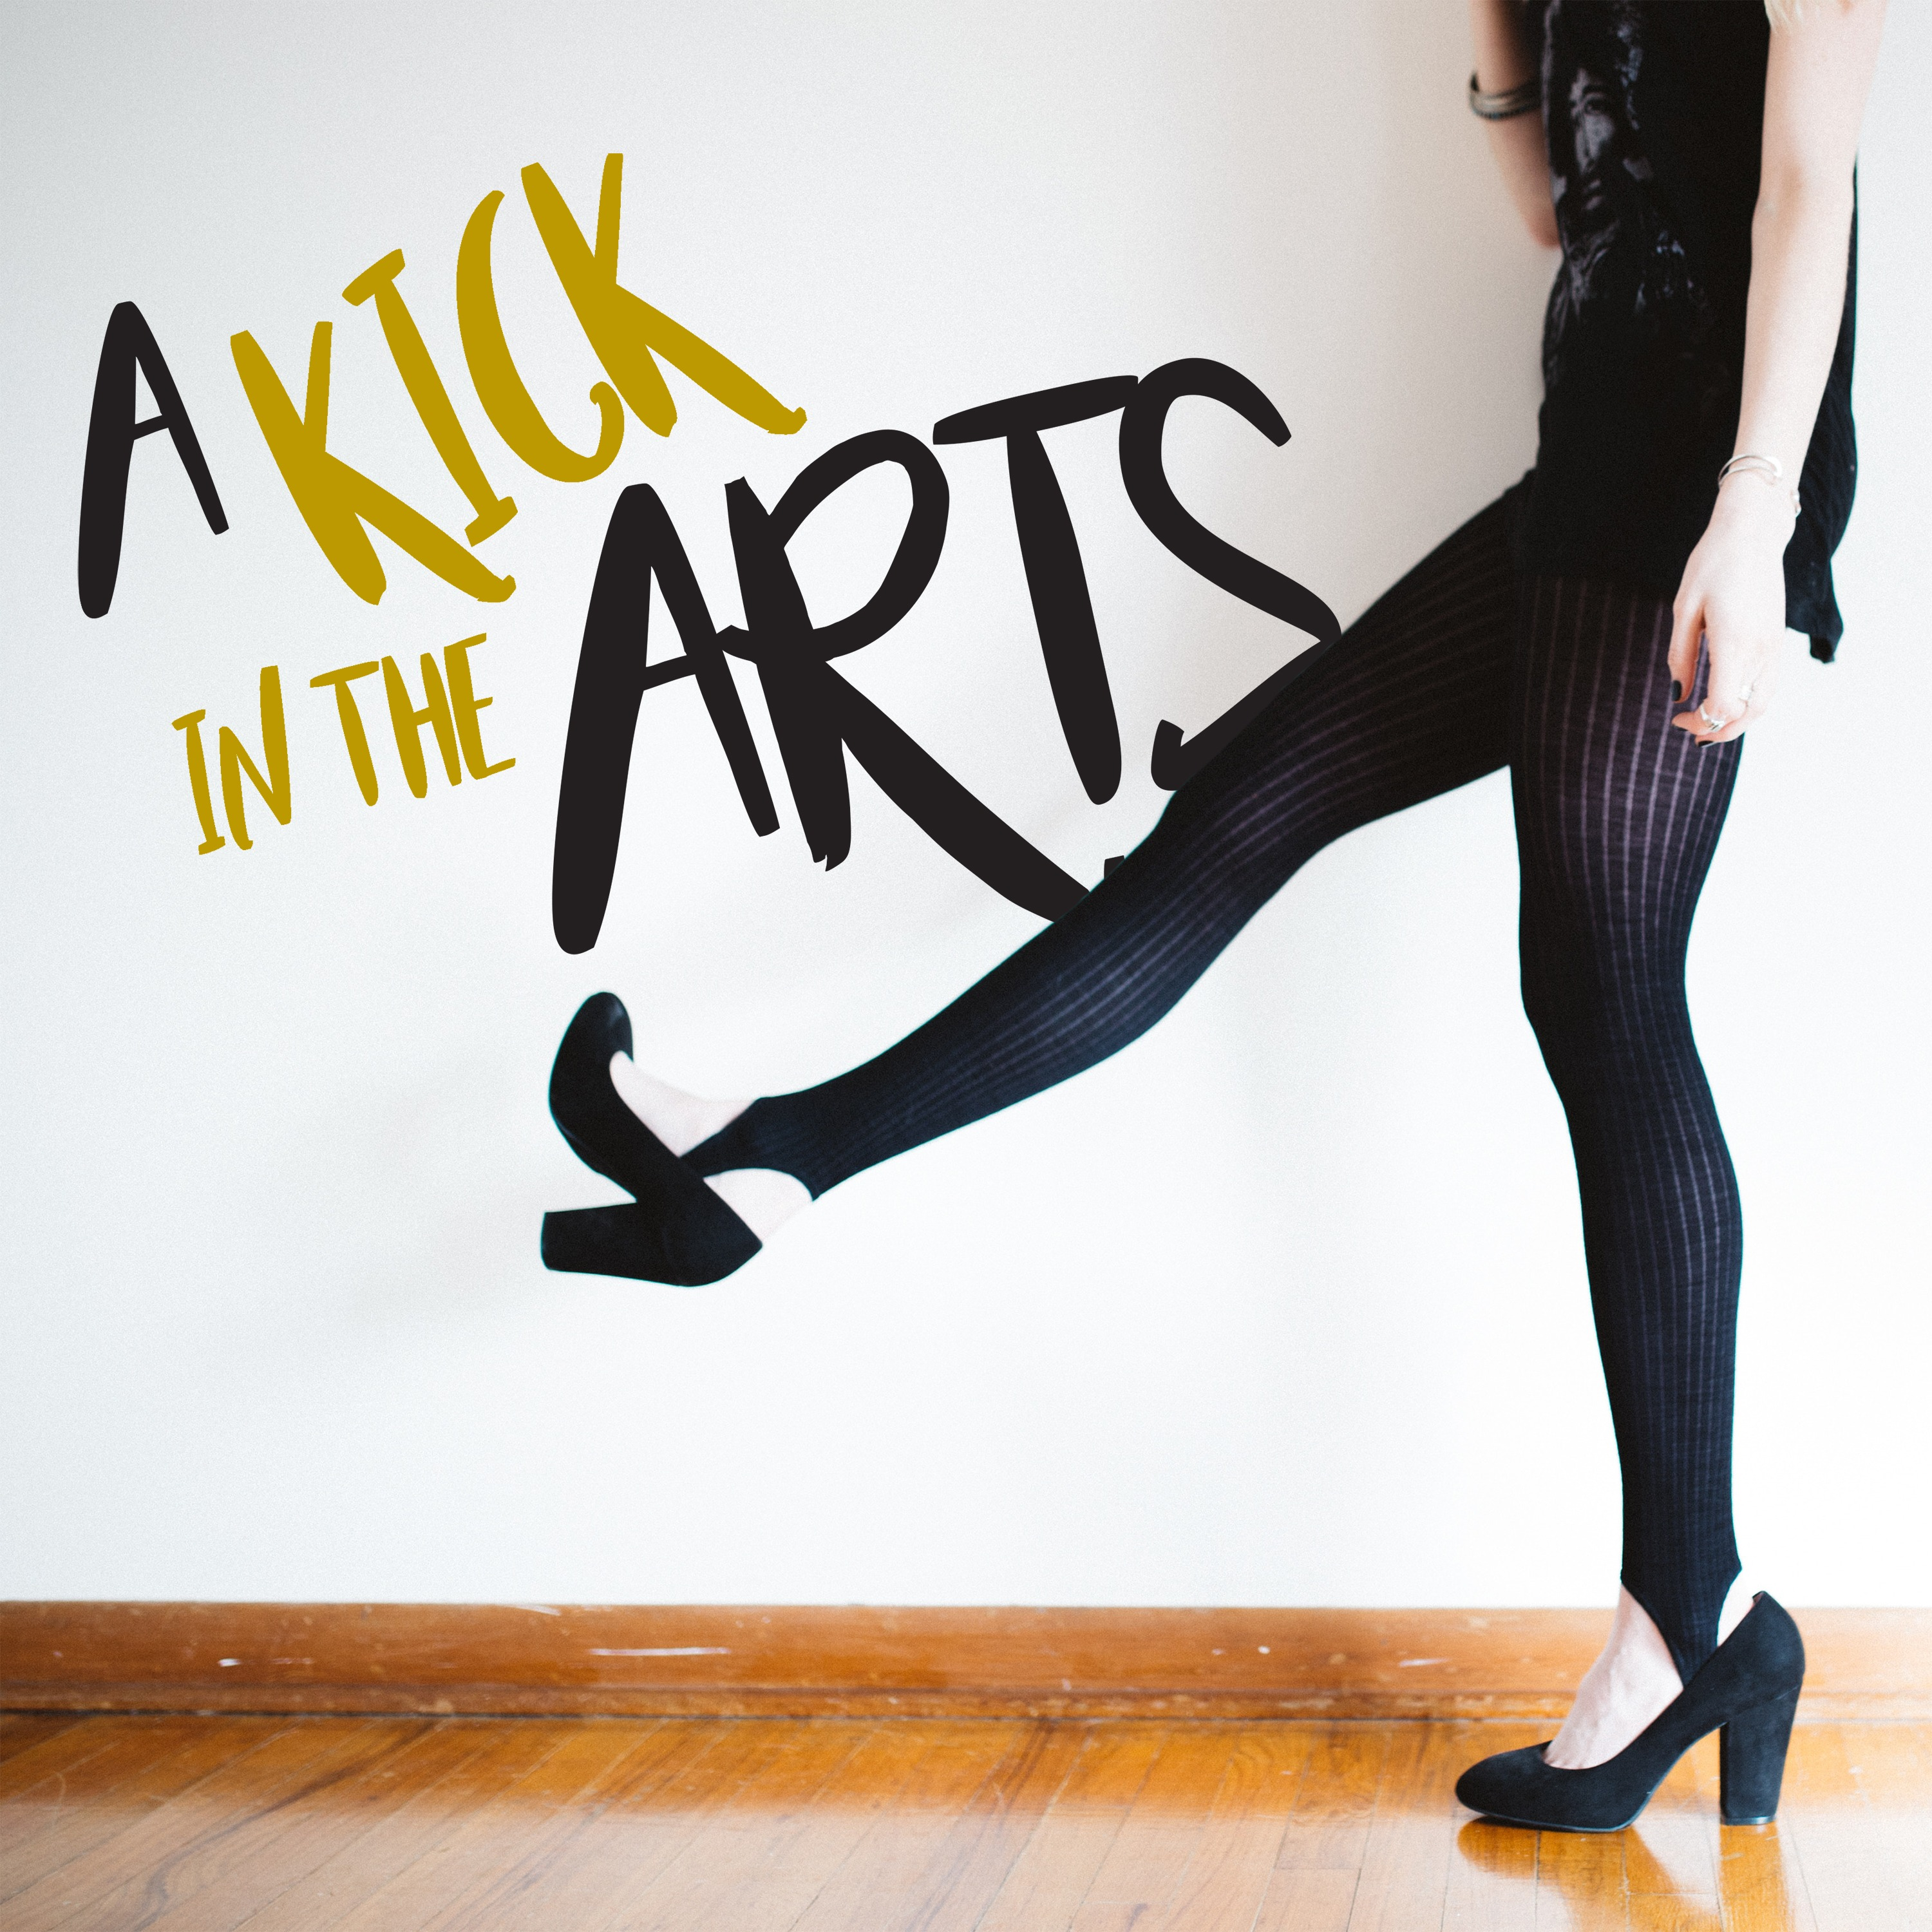 A Kick in the Arts